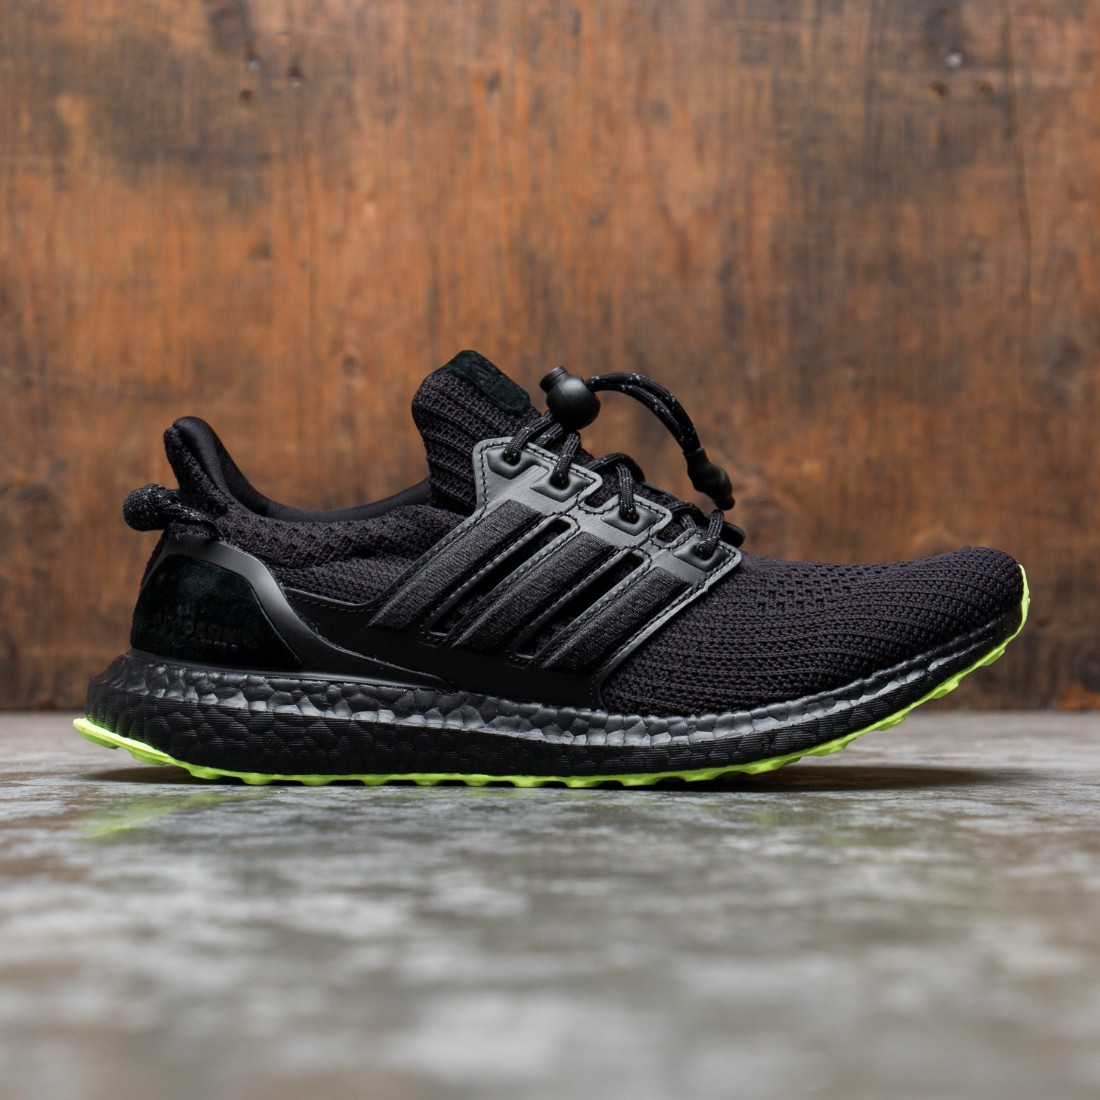 Adidas x Ivy Park Men UltraBOOST OG (black / core black / hi-res yellow)